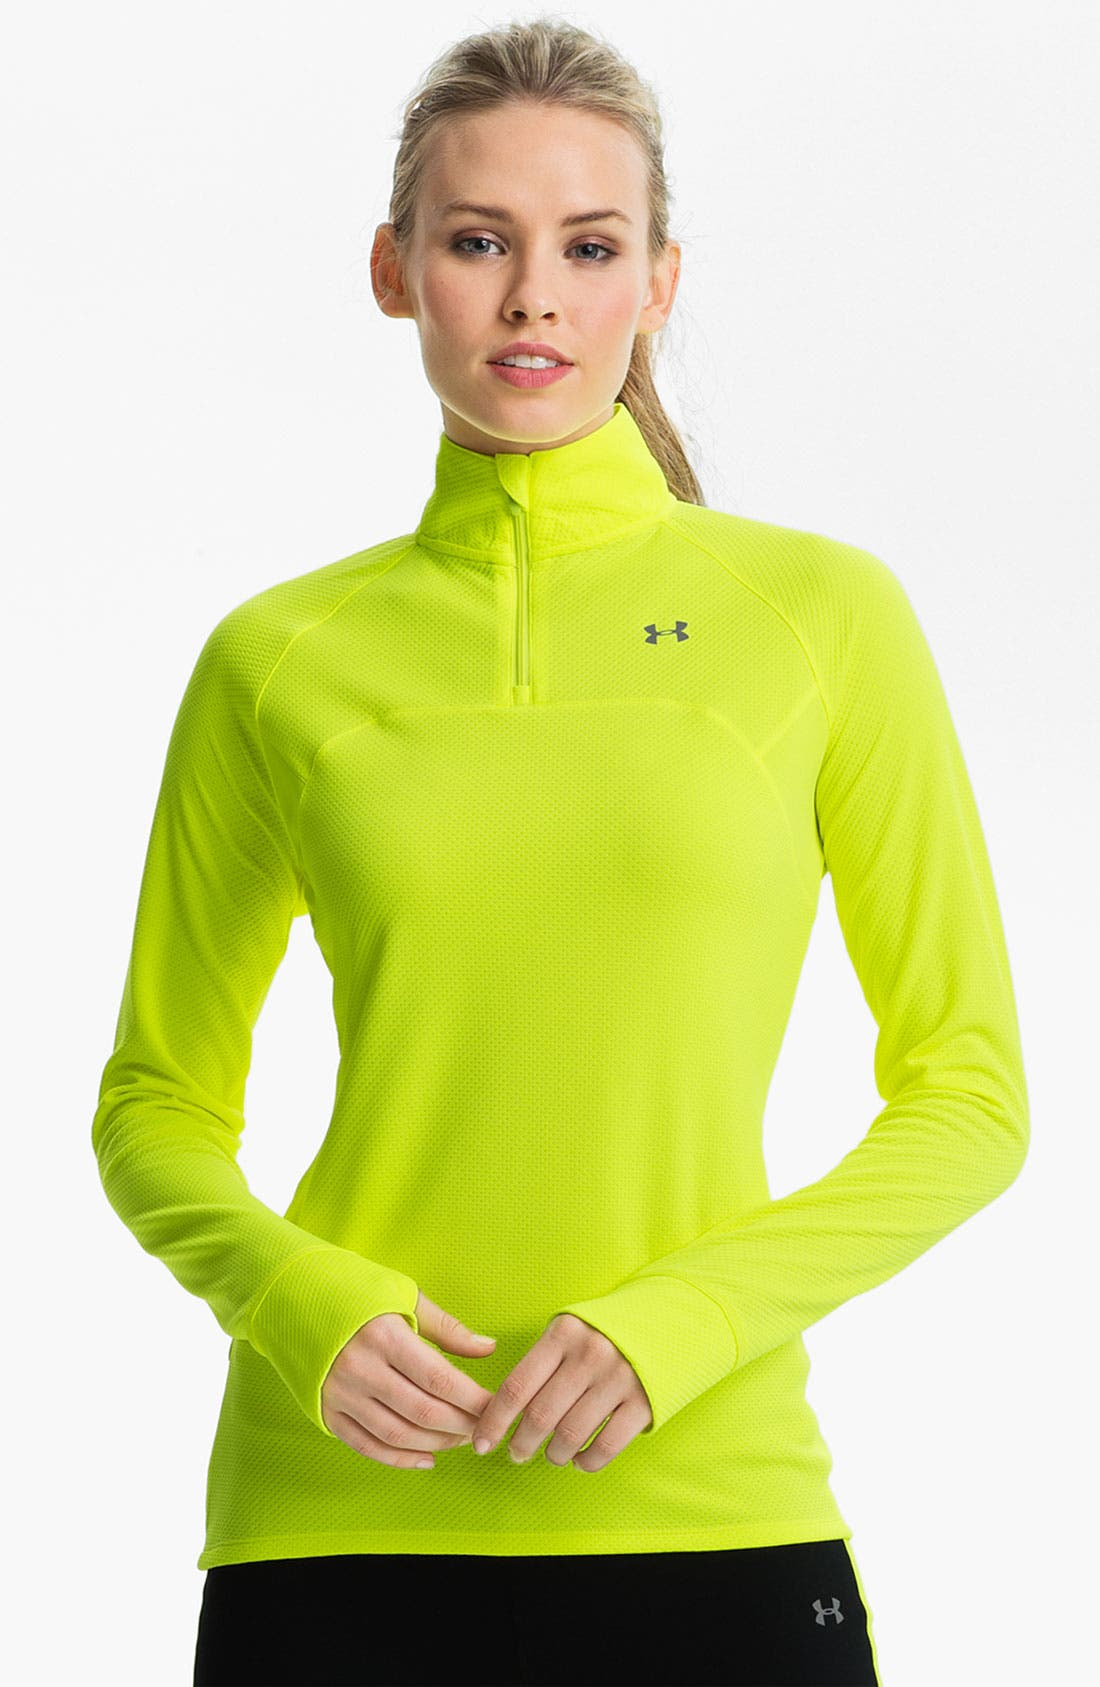 Alternate Image 1 Selected - Under Armour 'Escape' Quarter Zip Top